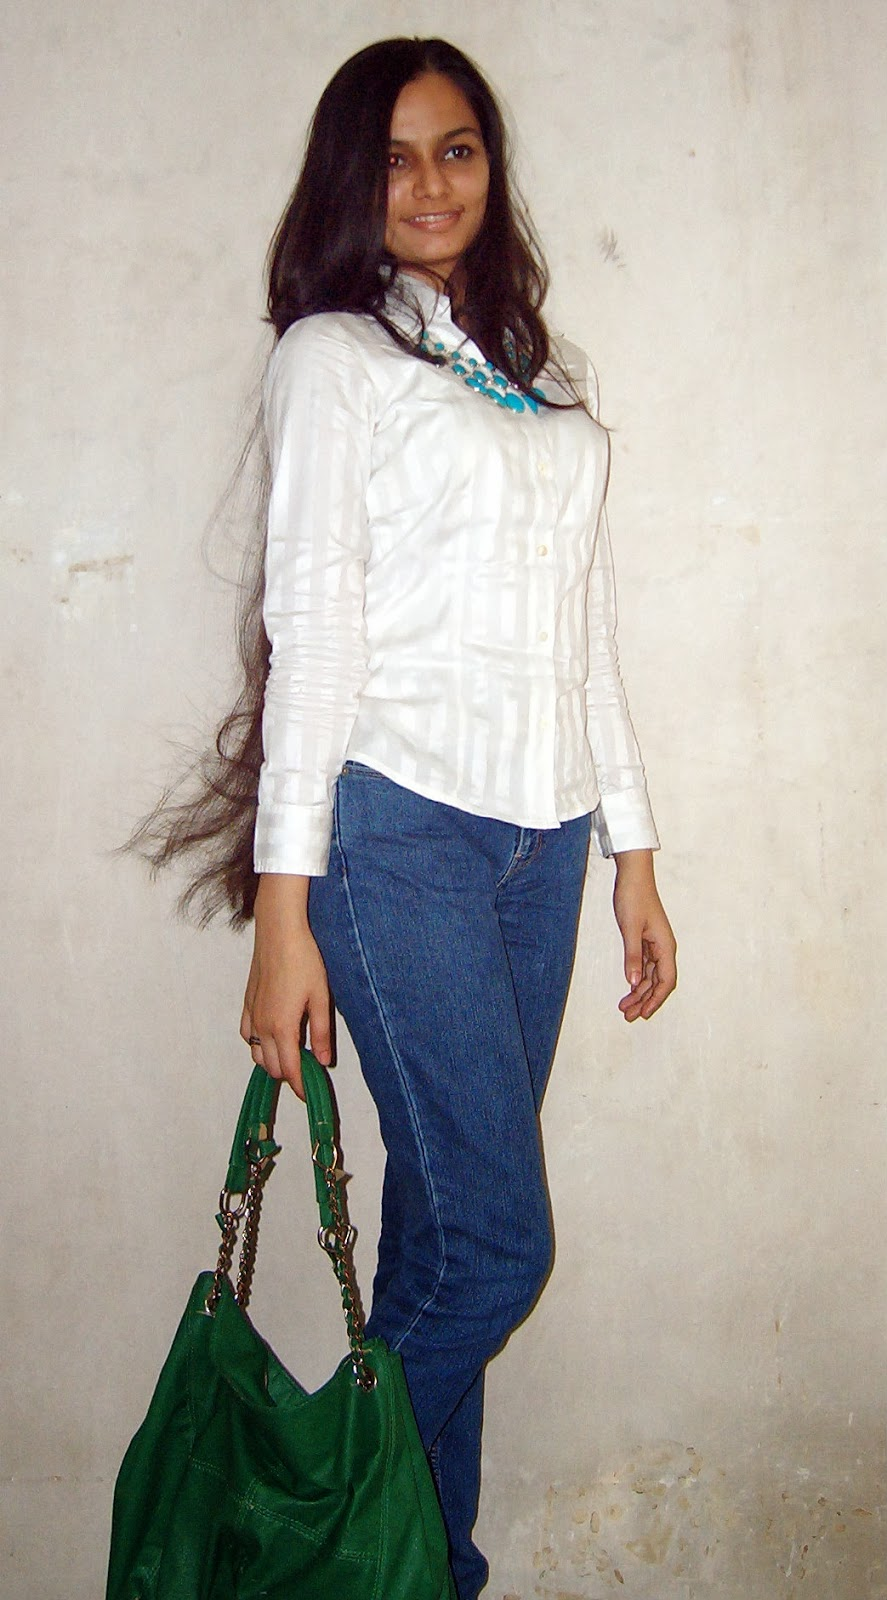 mint necklace, how to wear statement necklaces, long hair, semi casual outfits